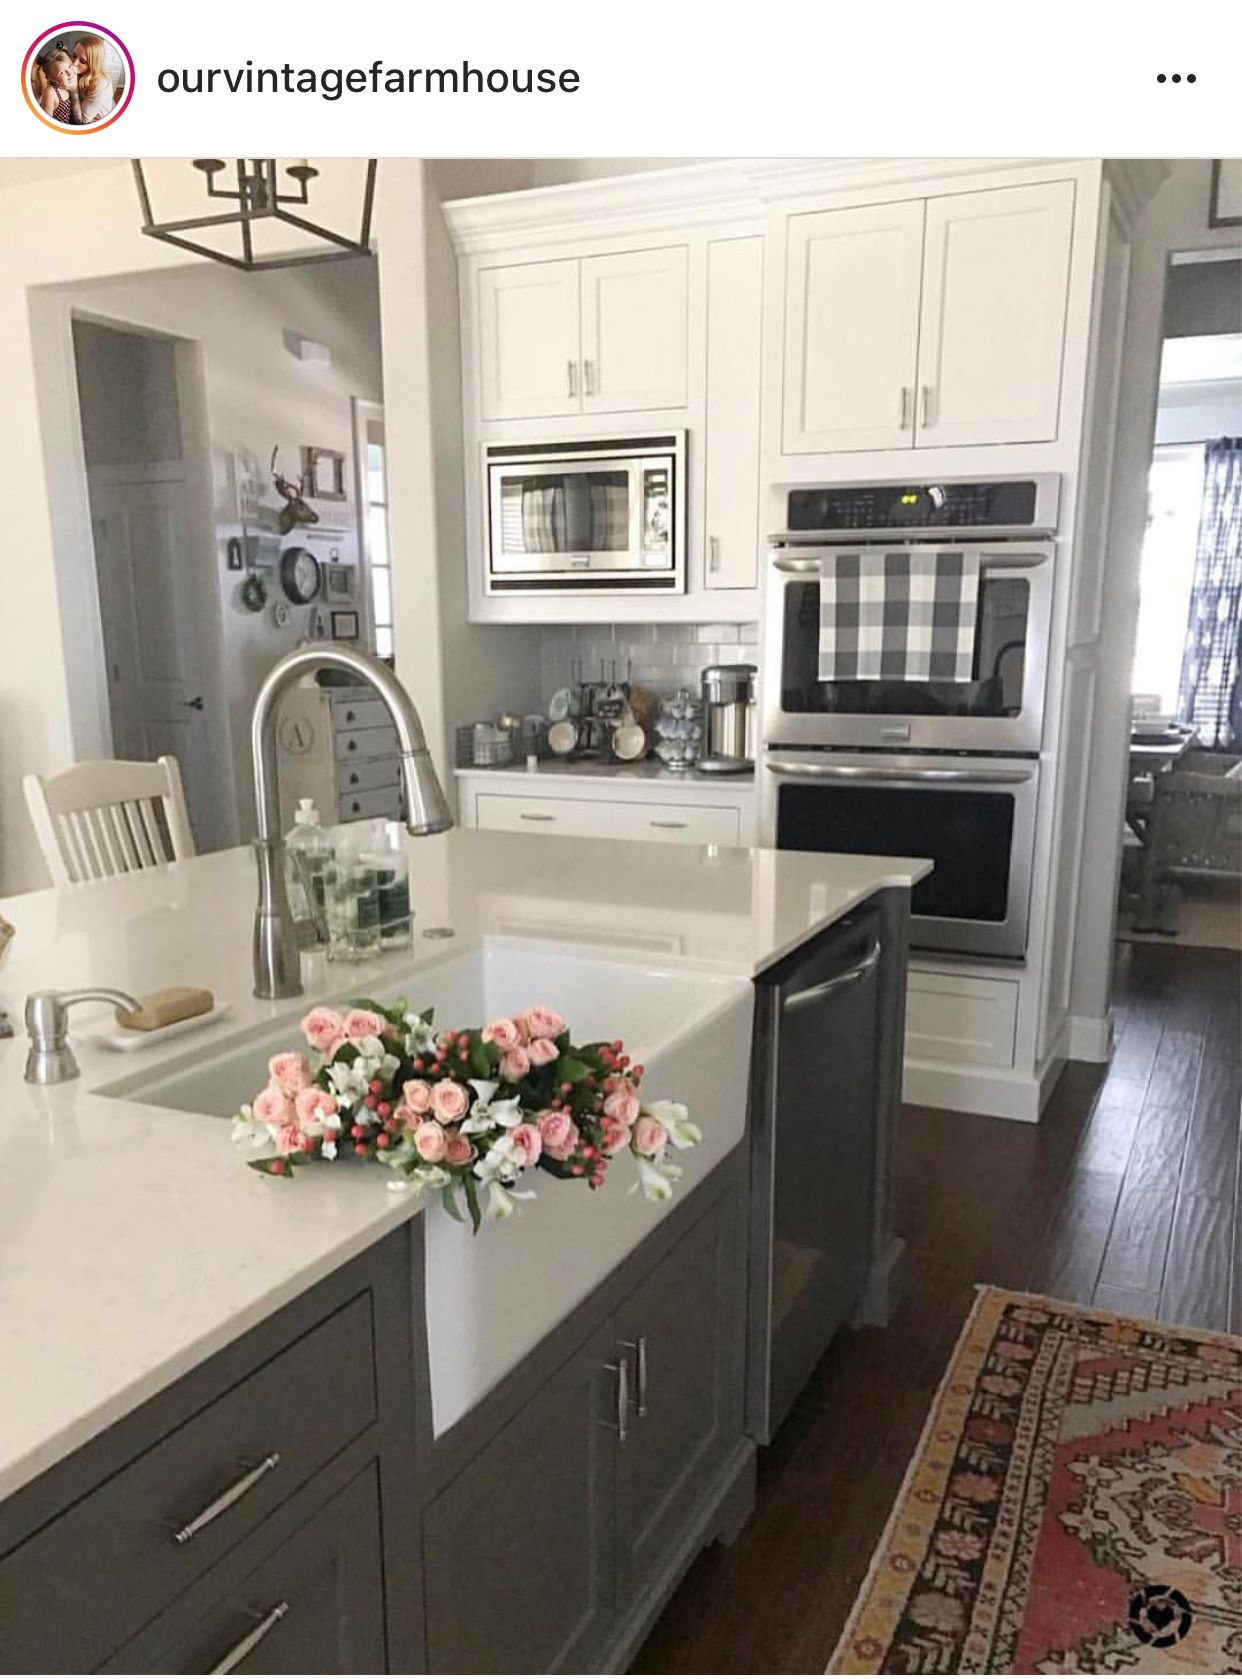 sink kitchen cabinets aid glass bowl pin by karla aliff on idea farmhouse traditional antique white welcome this photo gallery has pictures of kitchens featuring cream or in